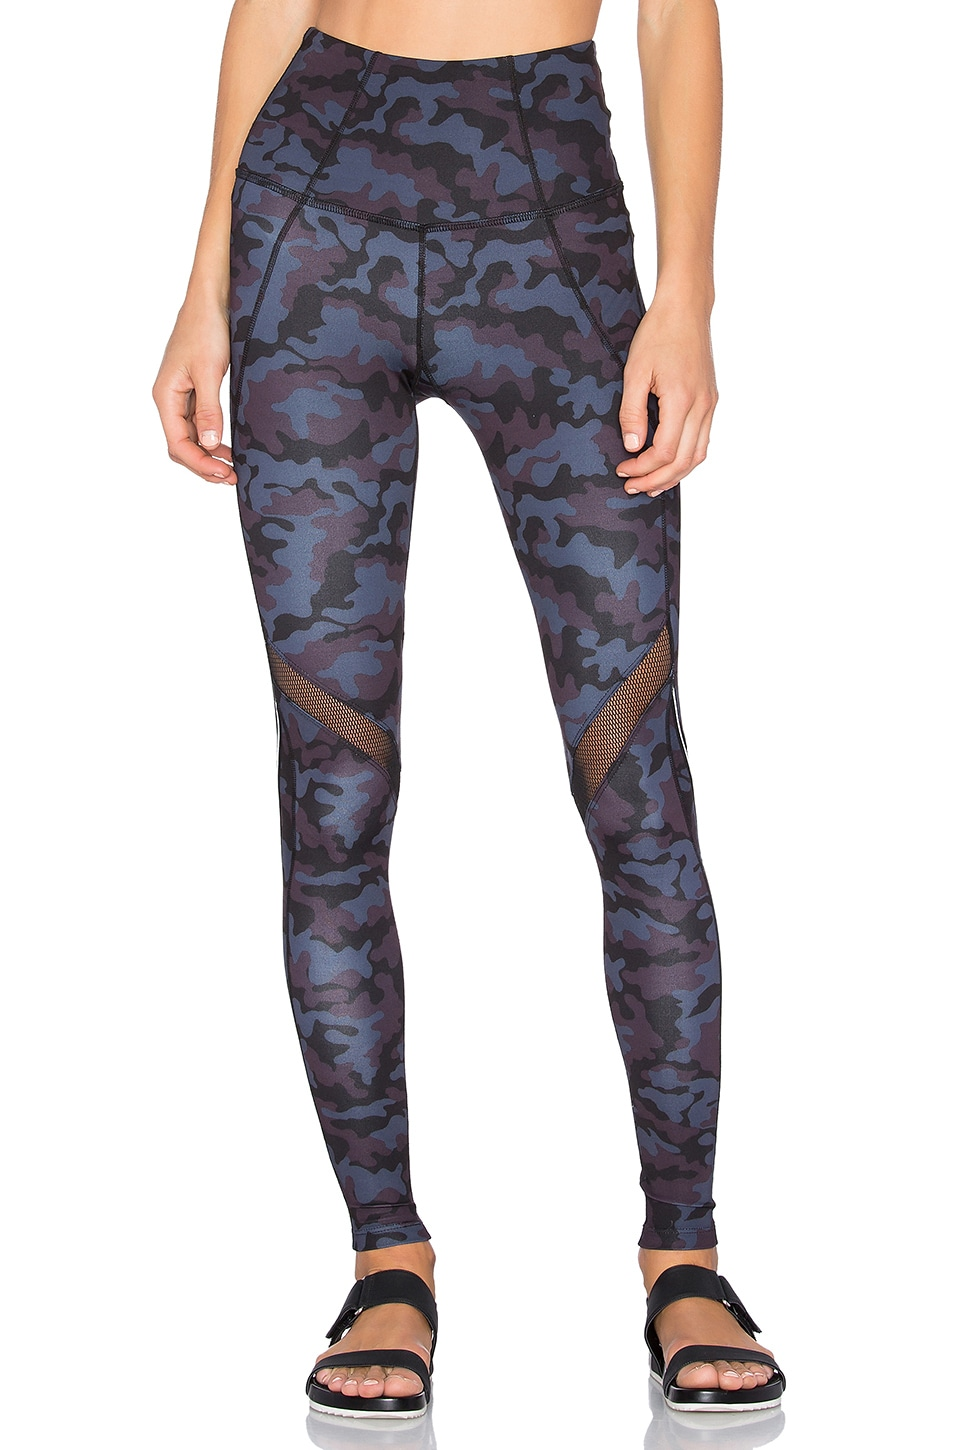 Portia High Waist Leggings by Splits59